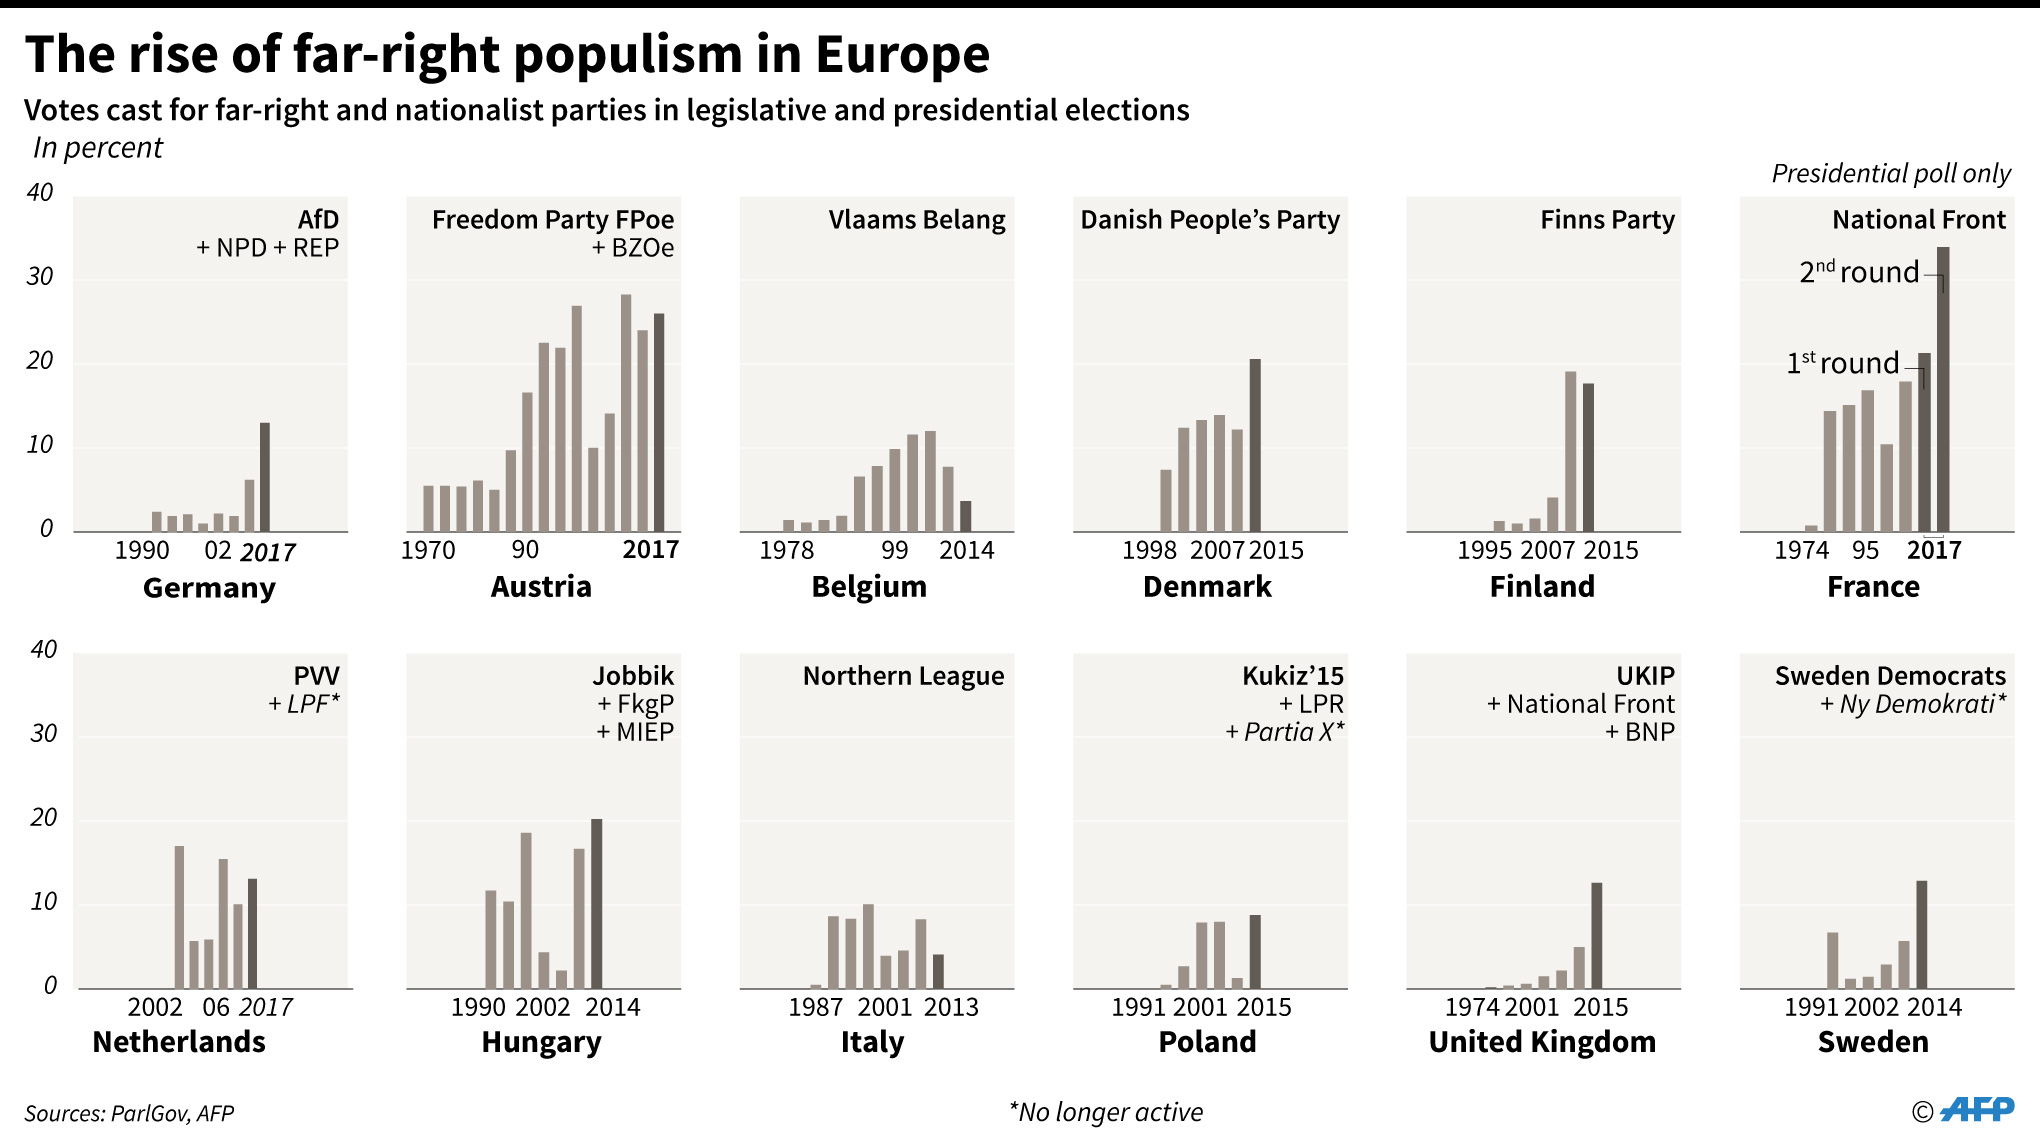 Trend in scores by major right-wing populist parties in parliamentary and presidential elections in 12 European countries.